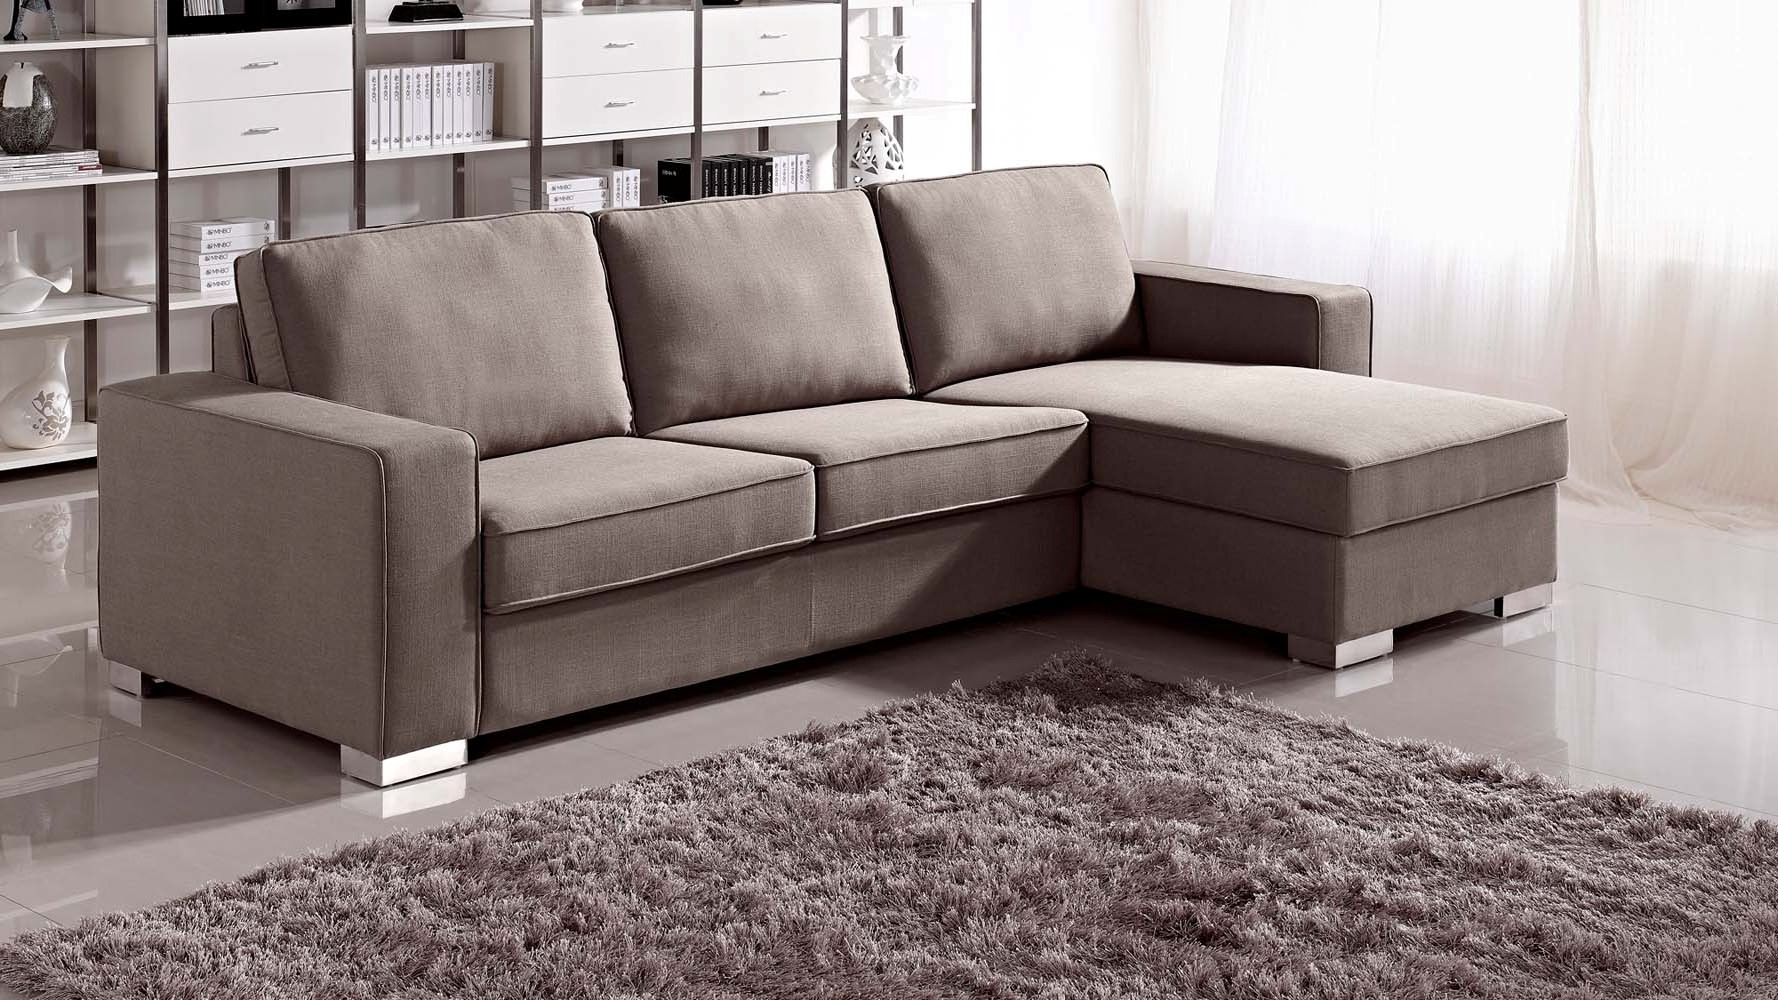 Sectional Sofas With Sleeper Intended For Most Current Sofa : Black Leather Sleeper Sofa Queen Leather Sofa With Queen (View 9 of 20)